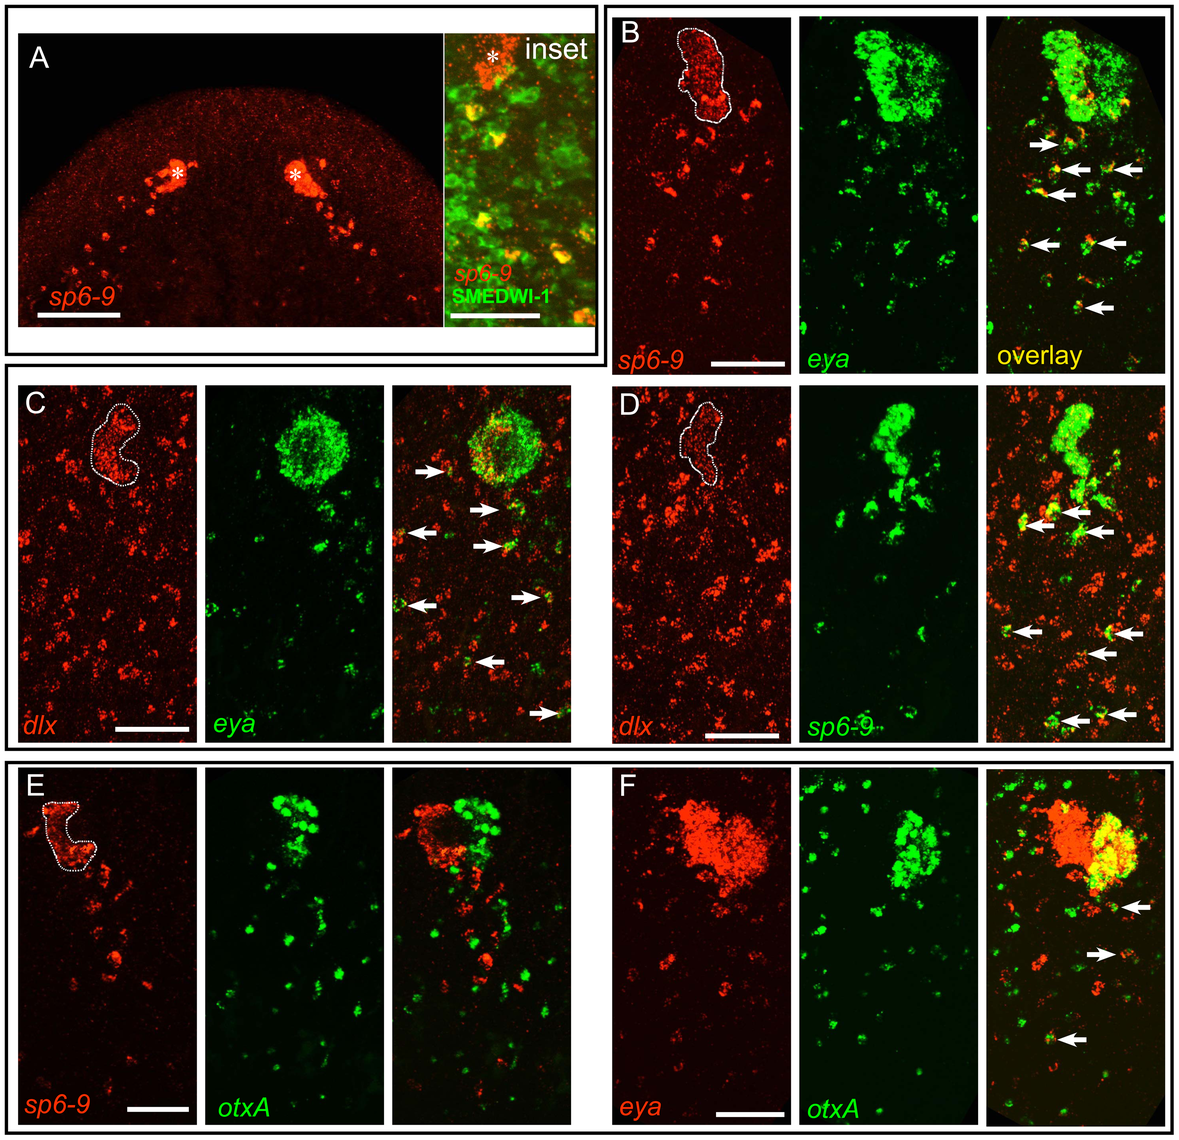 A population of mesenchymal cells posterior to the eye during regeneration expresses optic cup transcription factors.